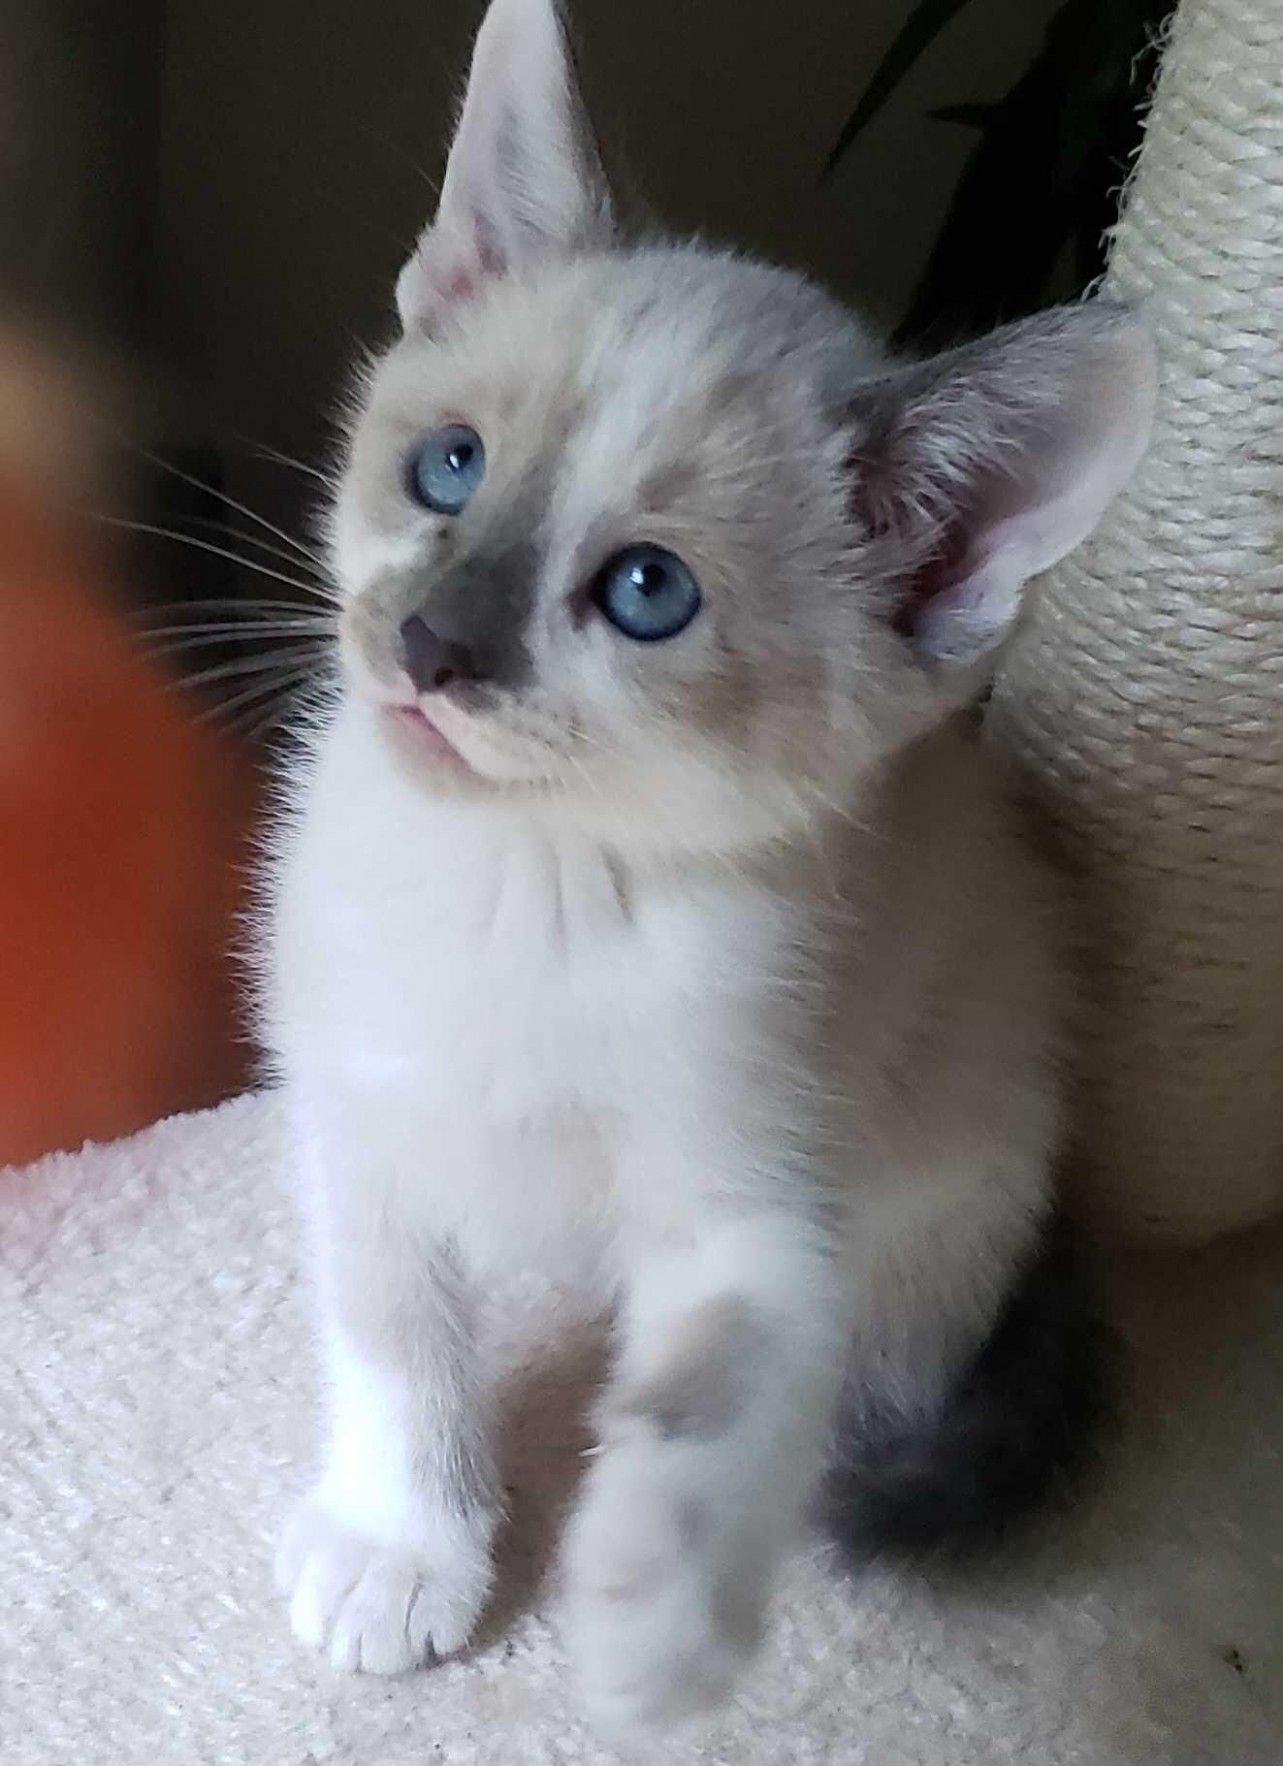 11 Cute Craigslist Maine Kittens Pictures In 2020 Munchkin Cat Kitten Pictures White Tabby Cat